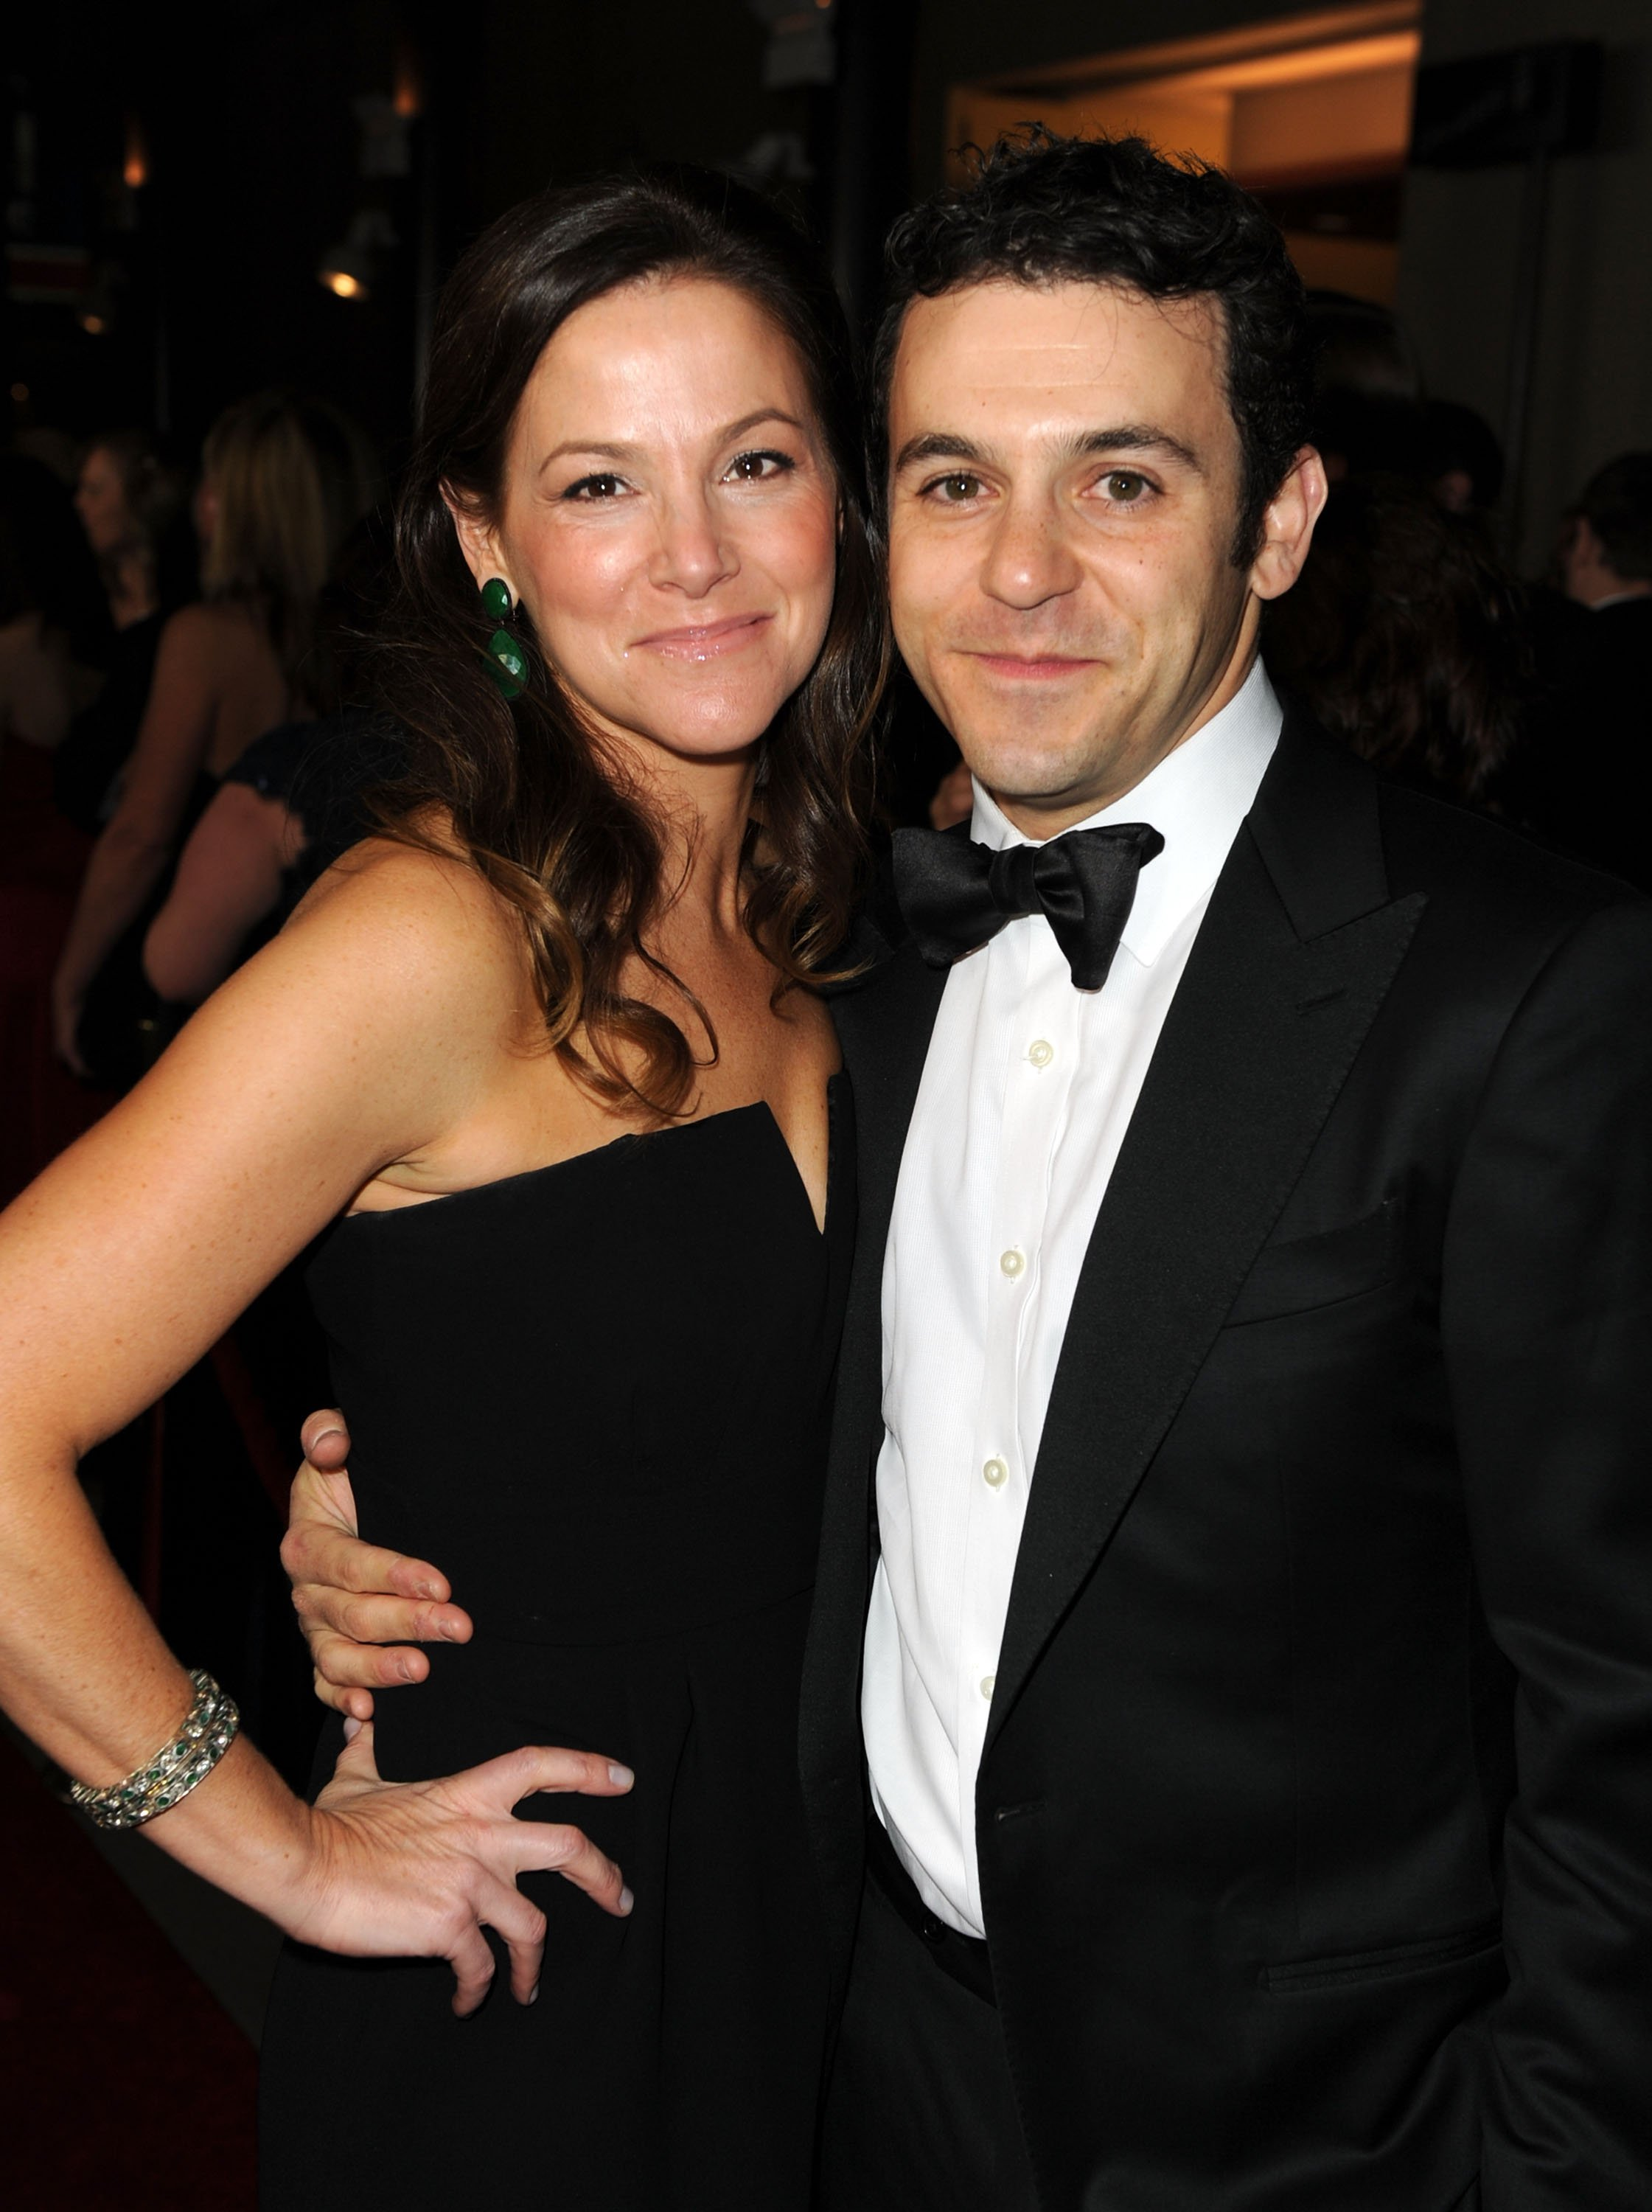 Fred Savage and wife Jennifer Lynn Stone arrive at the 64th Annual Directors Guild Of America Awards held at the Grand Ballroom at Hollywood & Highland on January 28, 2012 | Photo: GettyImages